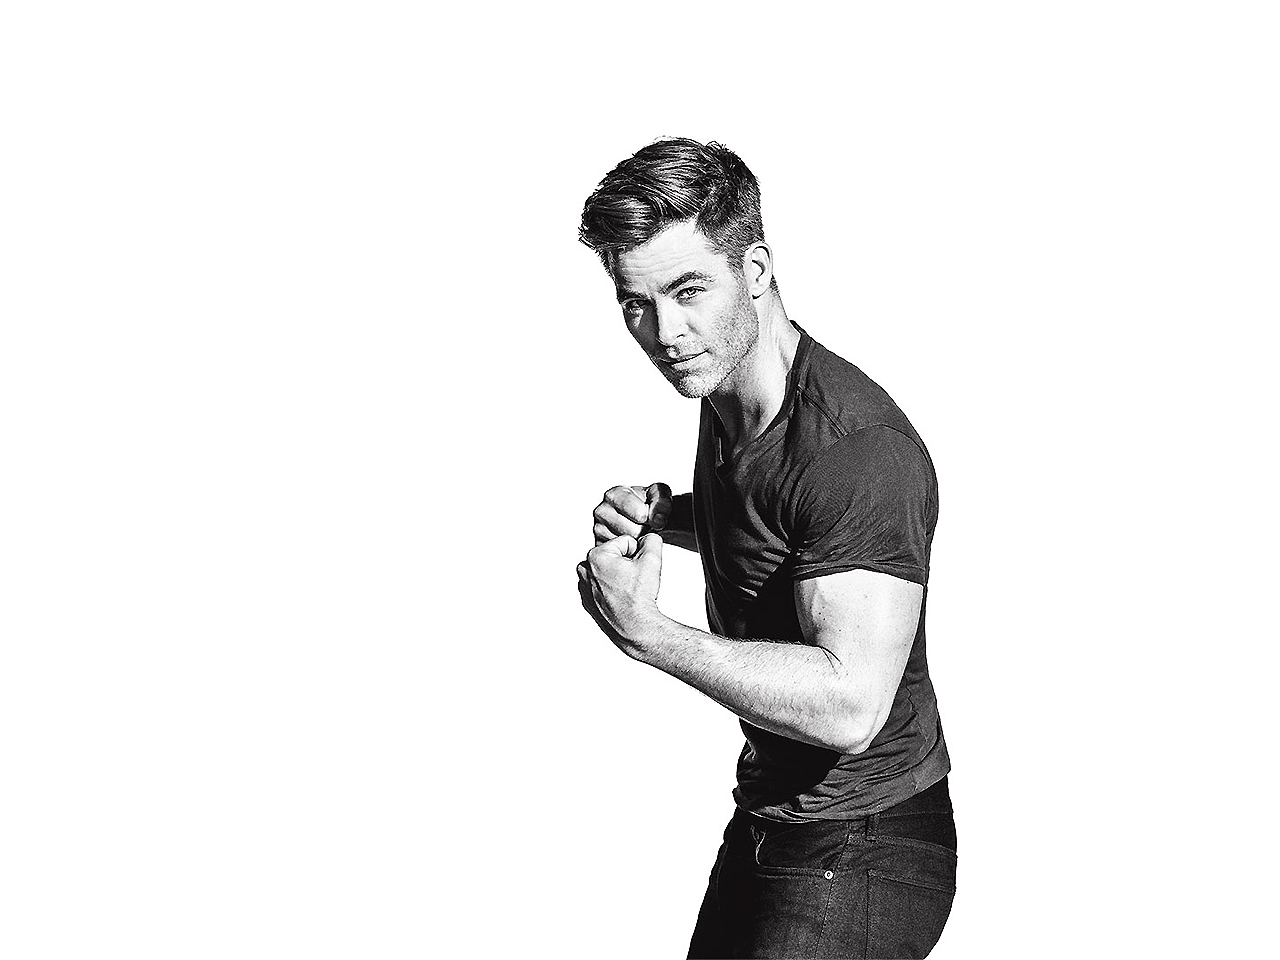 Build lean muscle at warp speed with Chris Pine's 'Star Trek' workout